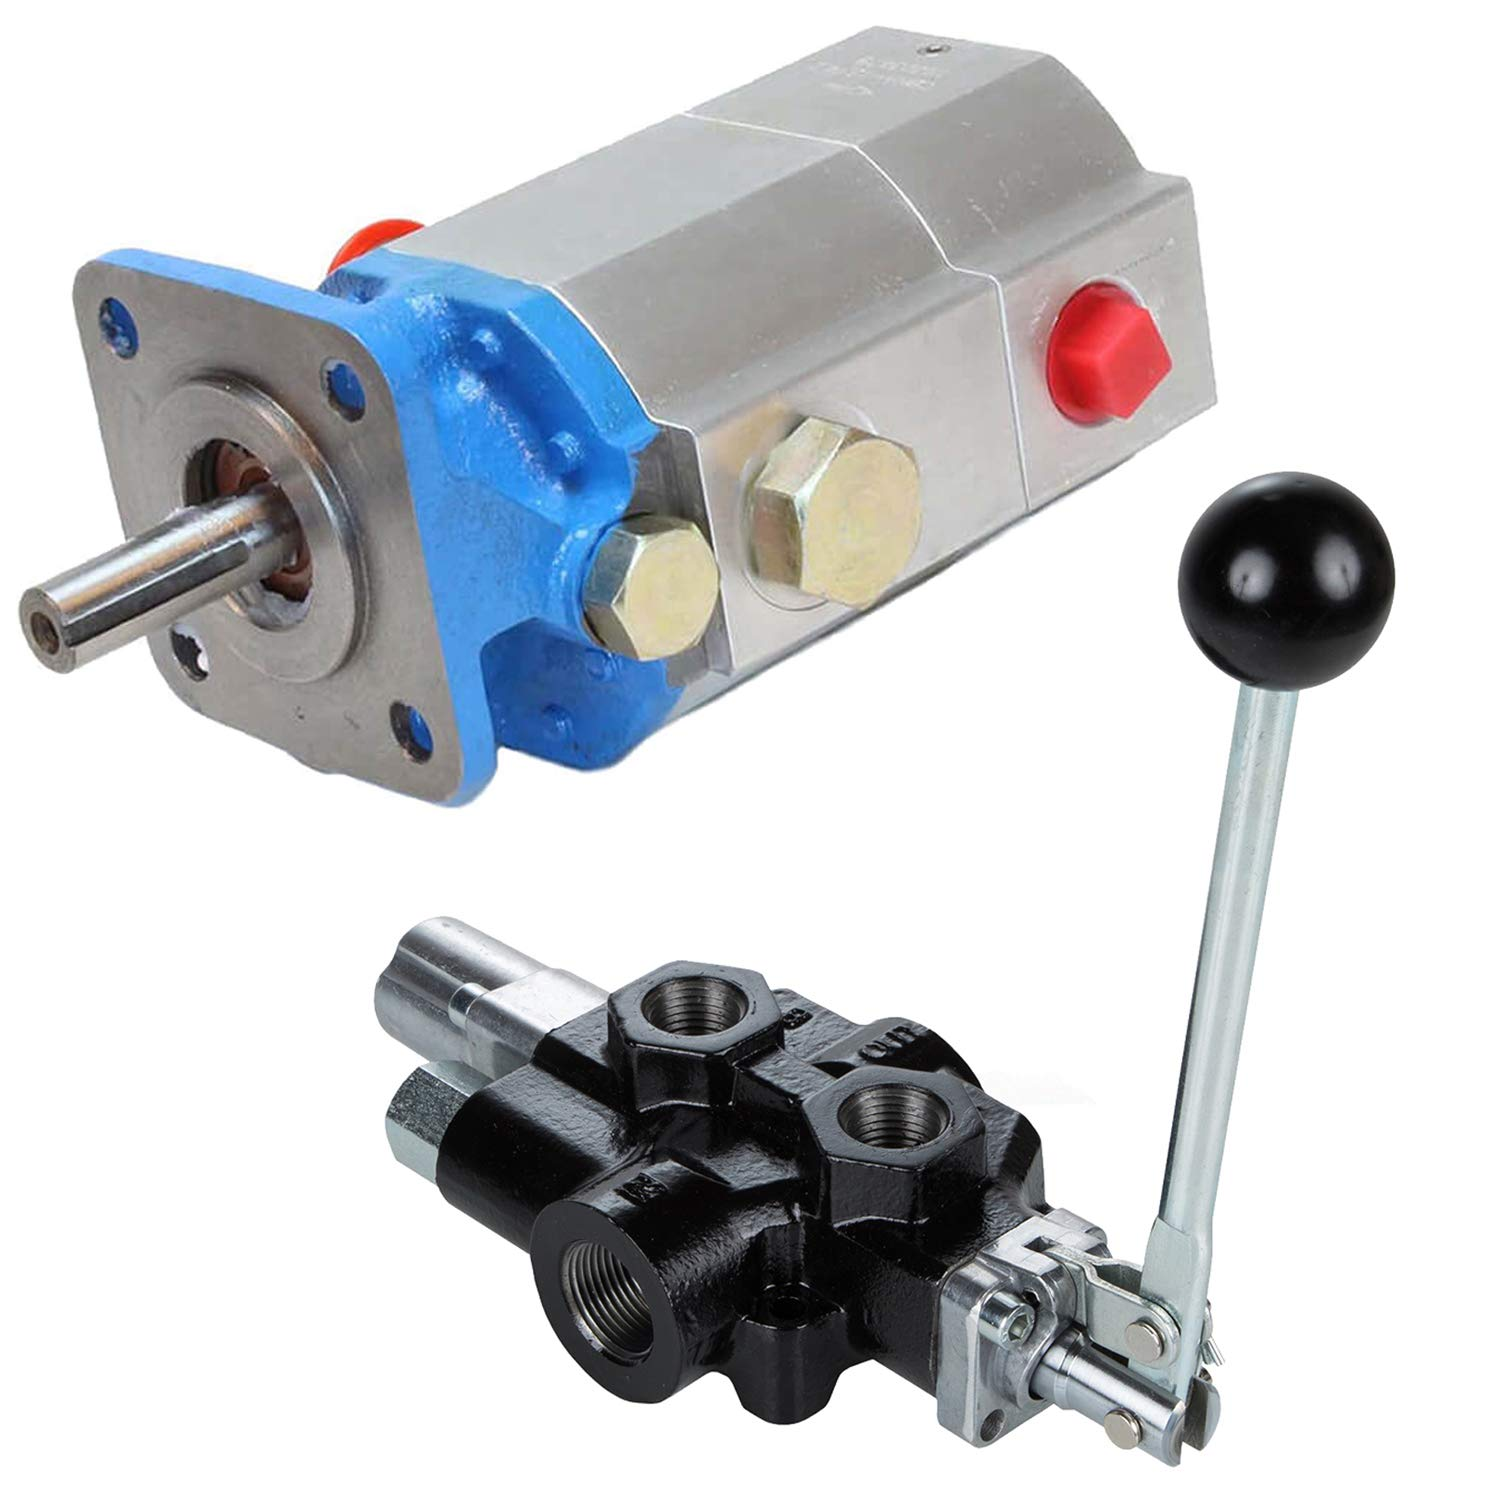 RuggedMade 11 GPM 2 Stage Hydraulic Log Splitter Pump, 18 GPM Directional Control Valve